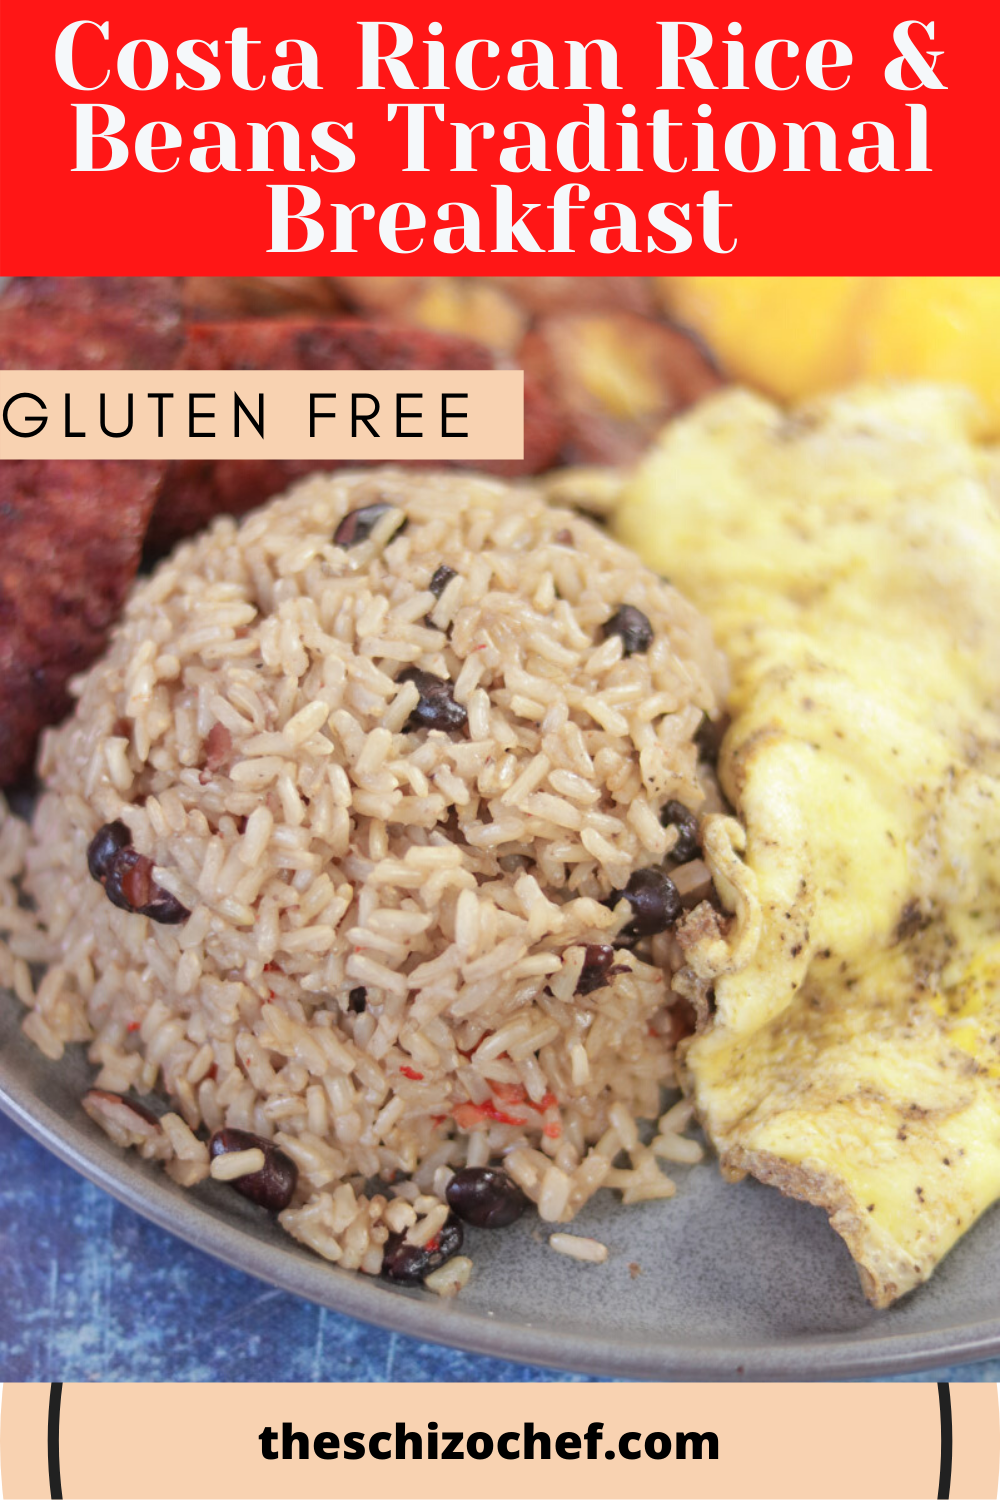 Gallo Pinto - Costa Rican Rice & Beans Breakfast Platter with text for Pinterest